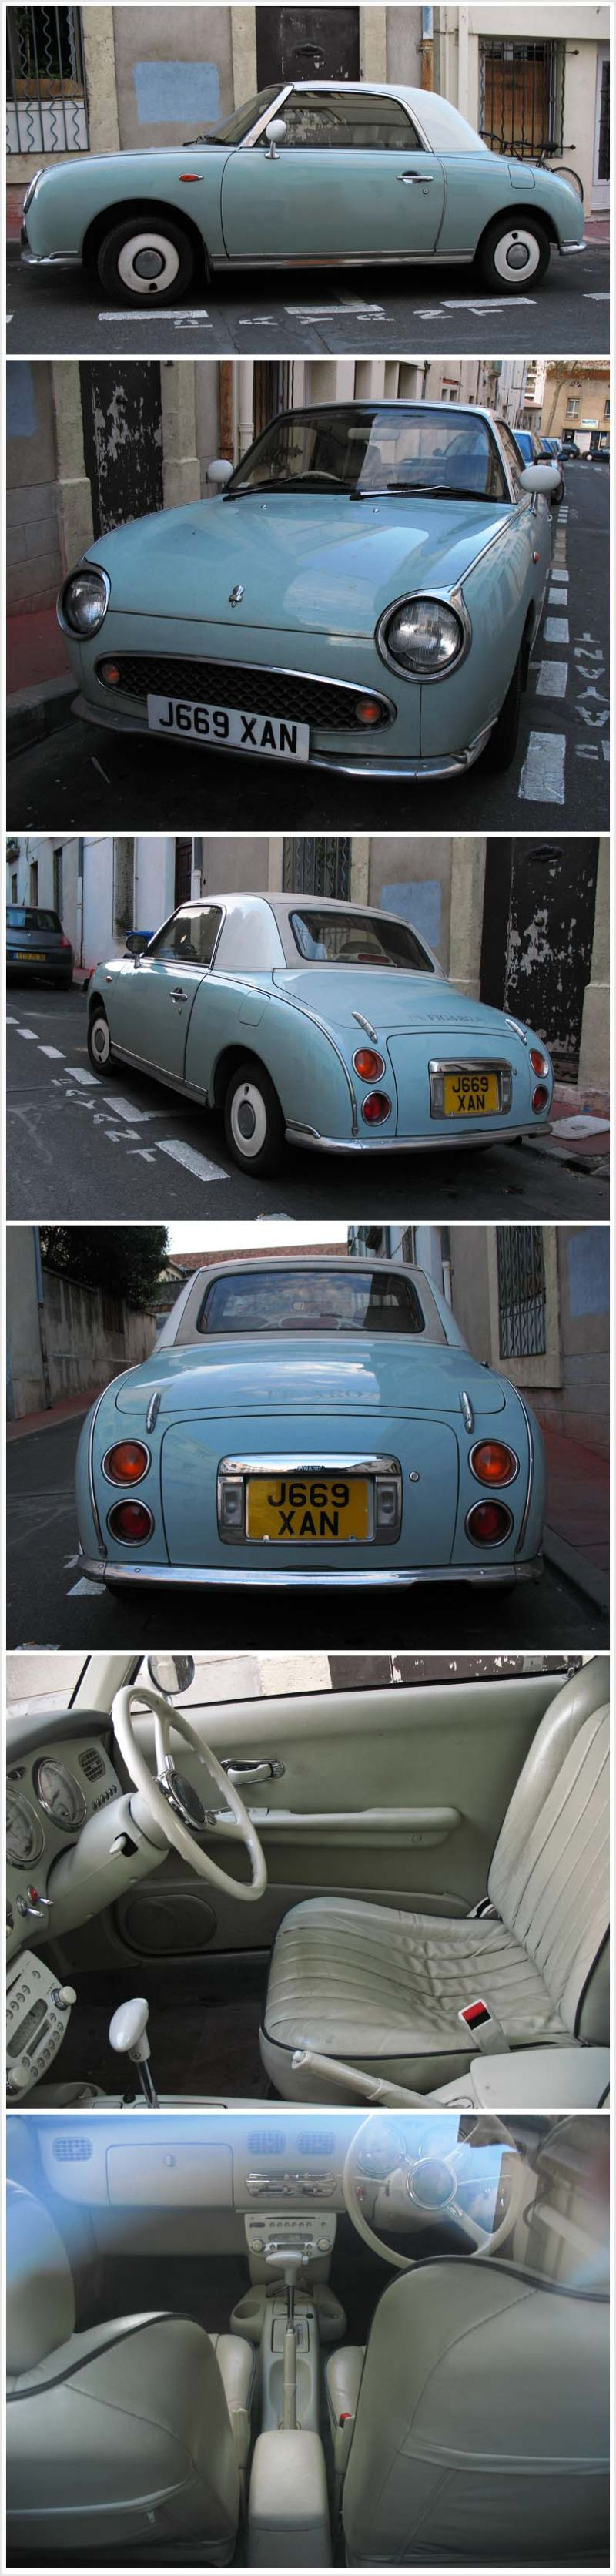 Mint green Figaro sports car.